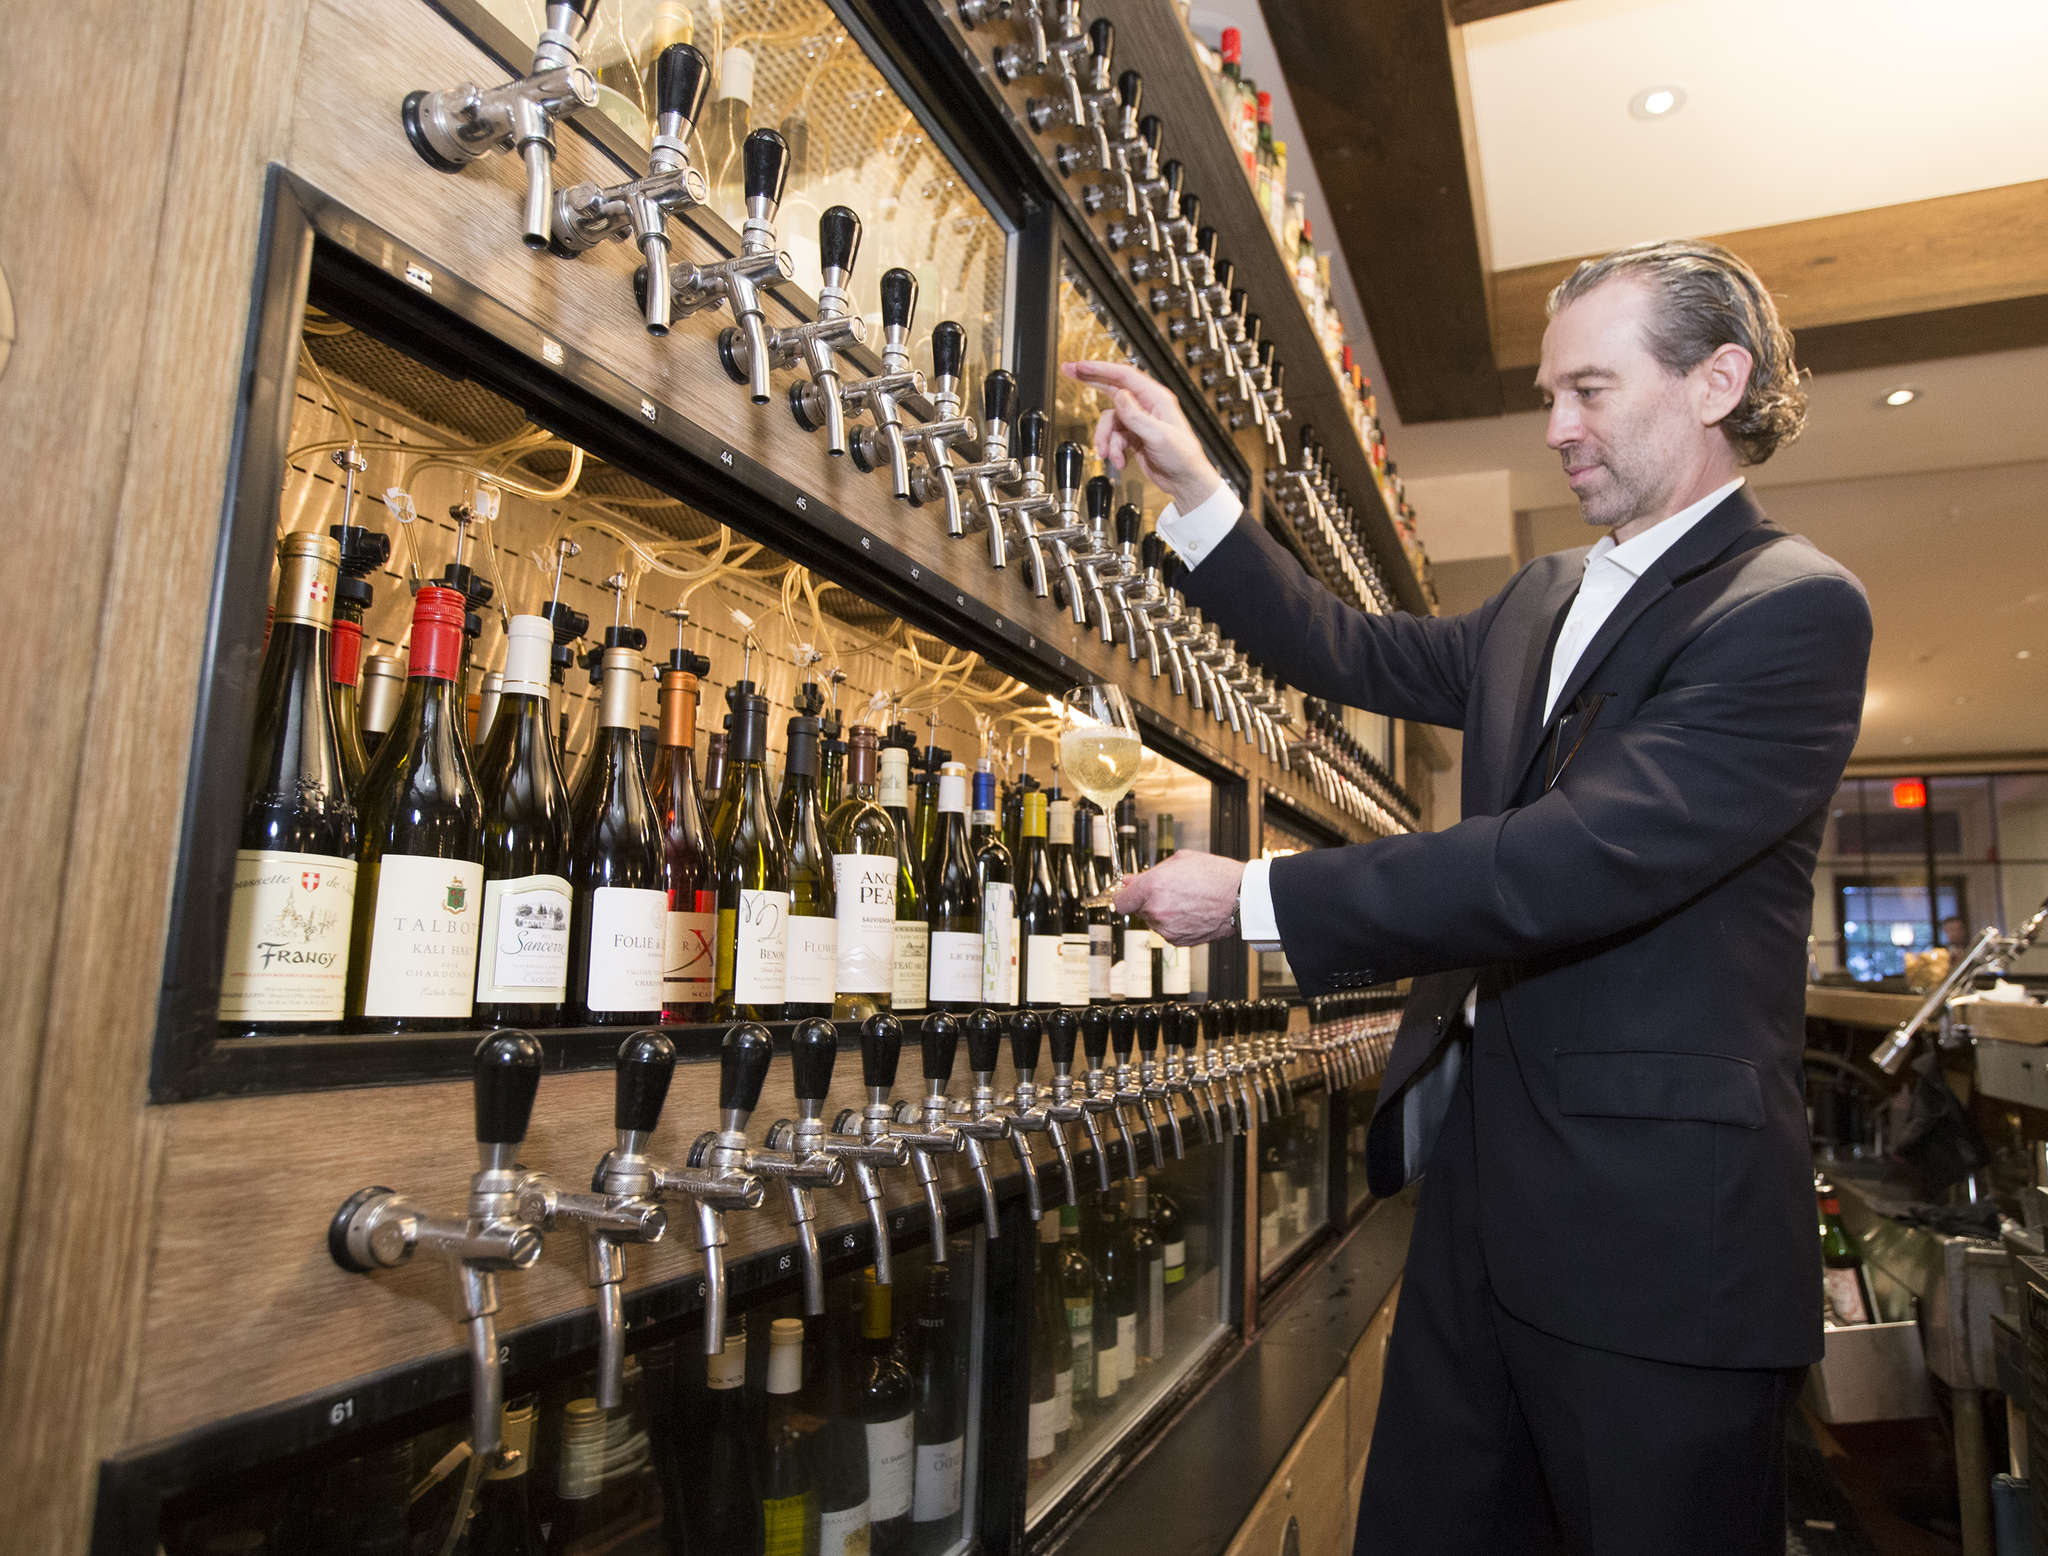 William Eccleston, Panorama´s wine director and general manager, pours a glass at the 120-bottle Wine Keeper, the largest single wine-by-the-glass preservation system in the world.